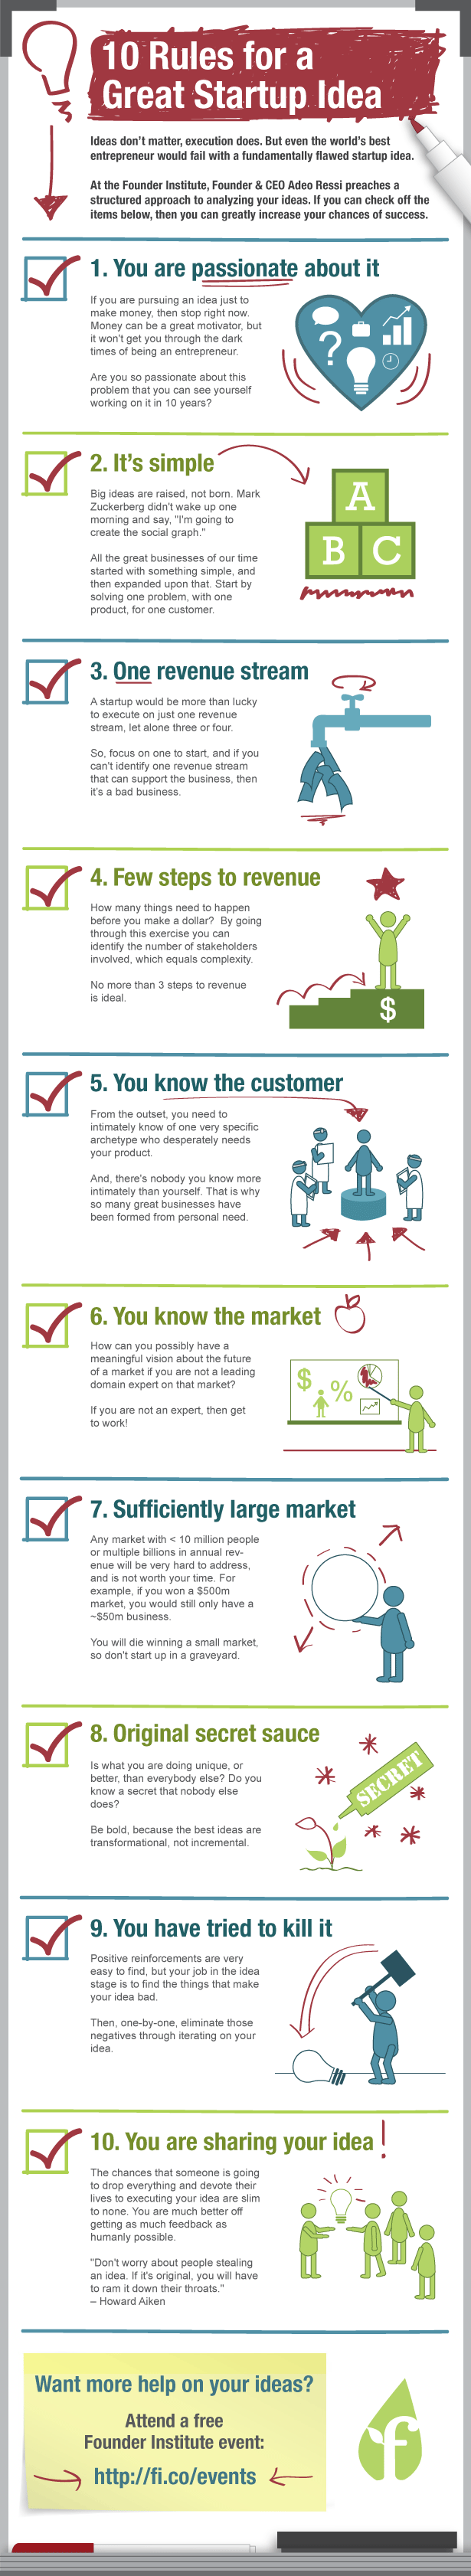 10 Rules That Nourish A Great Startup Idea [Infographic] | Pinterest ...